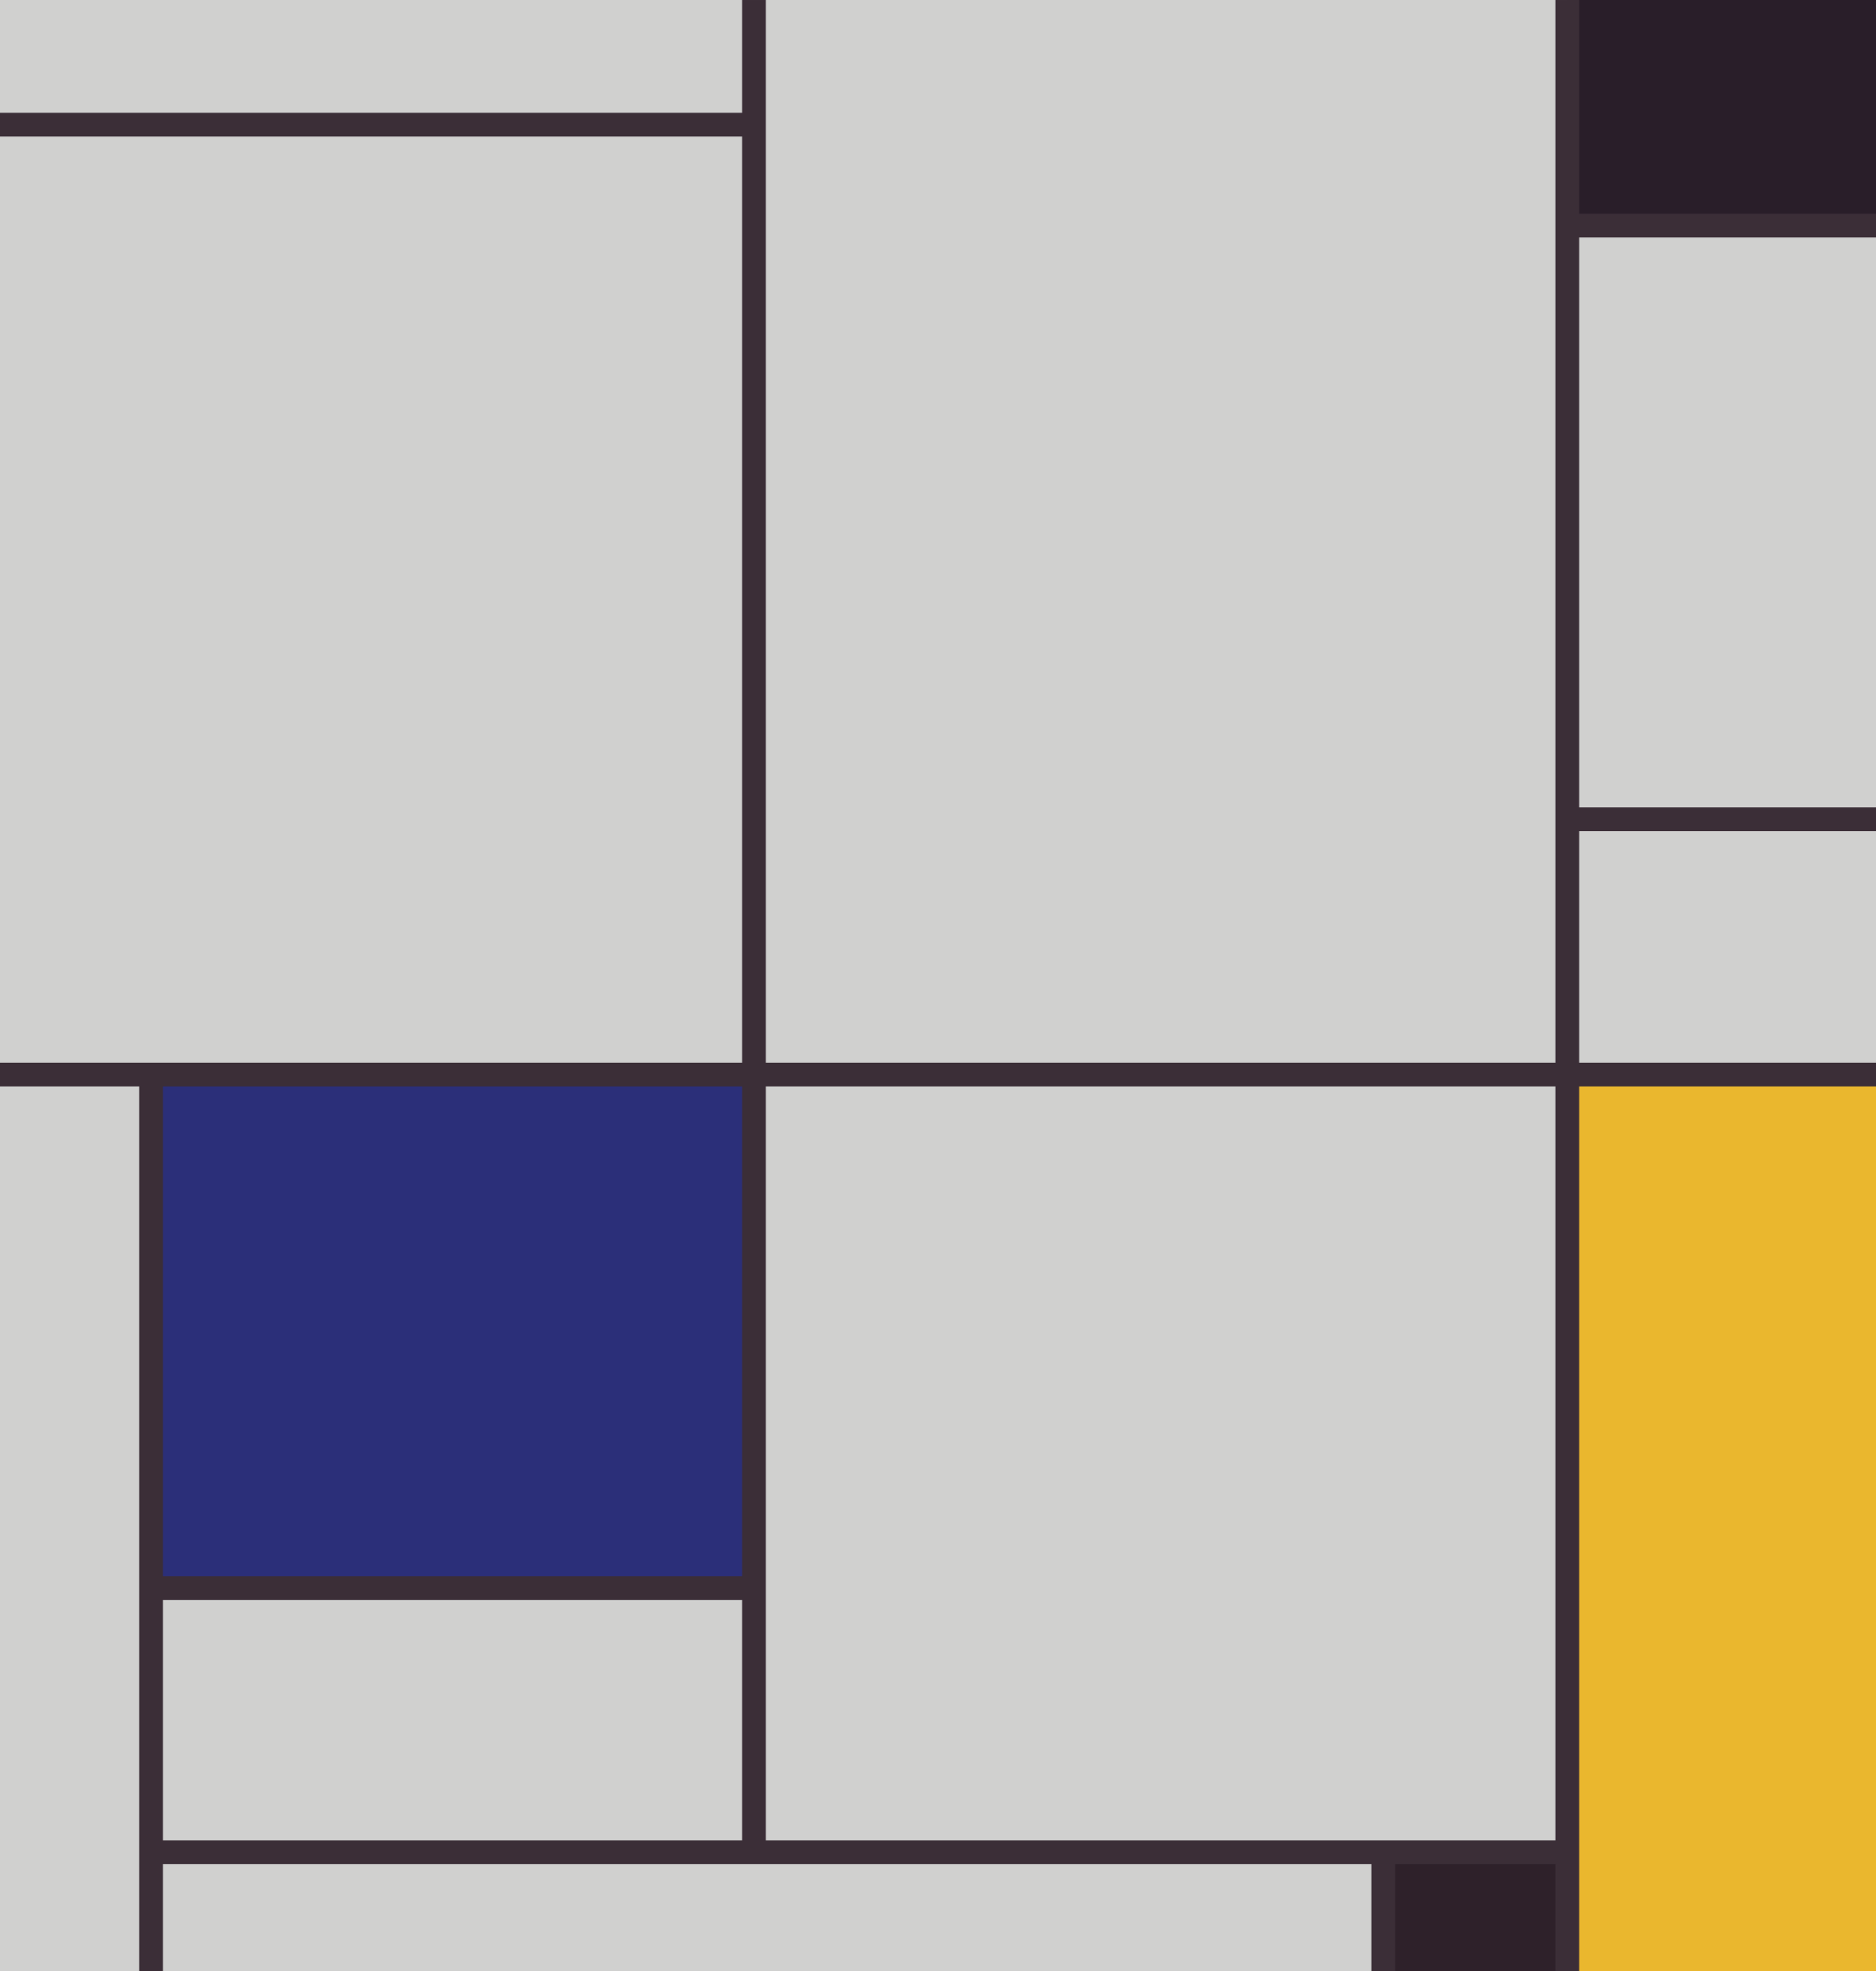 Mondrian style by donchico